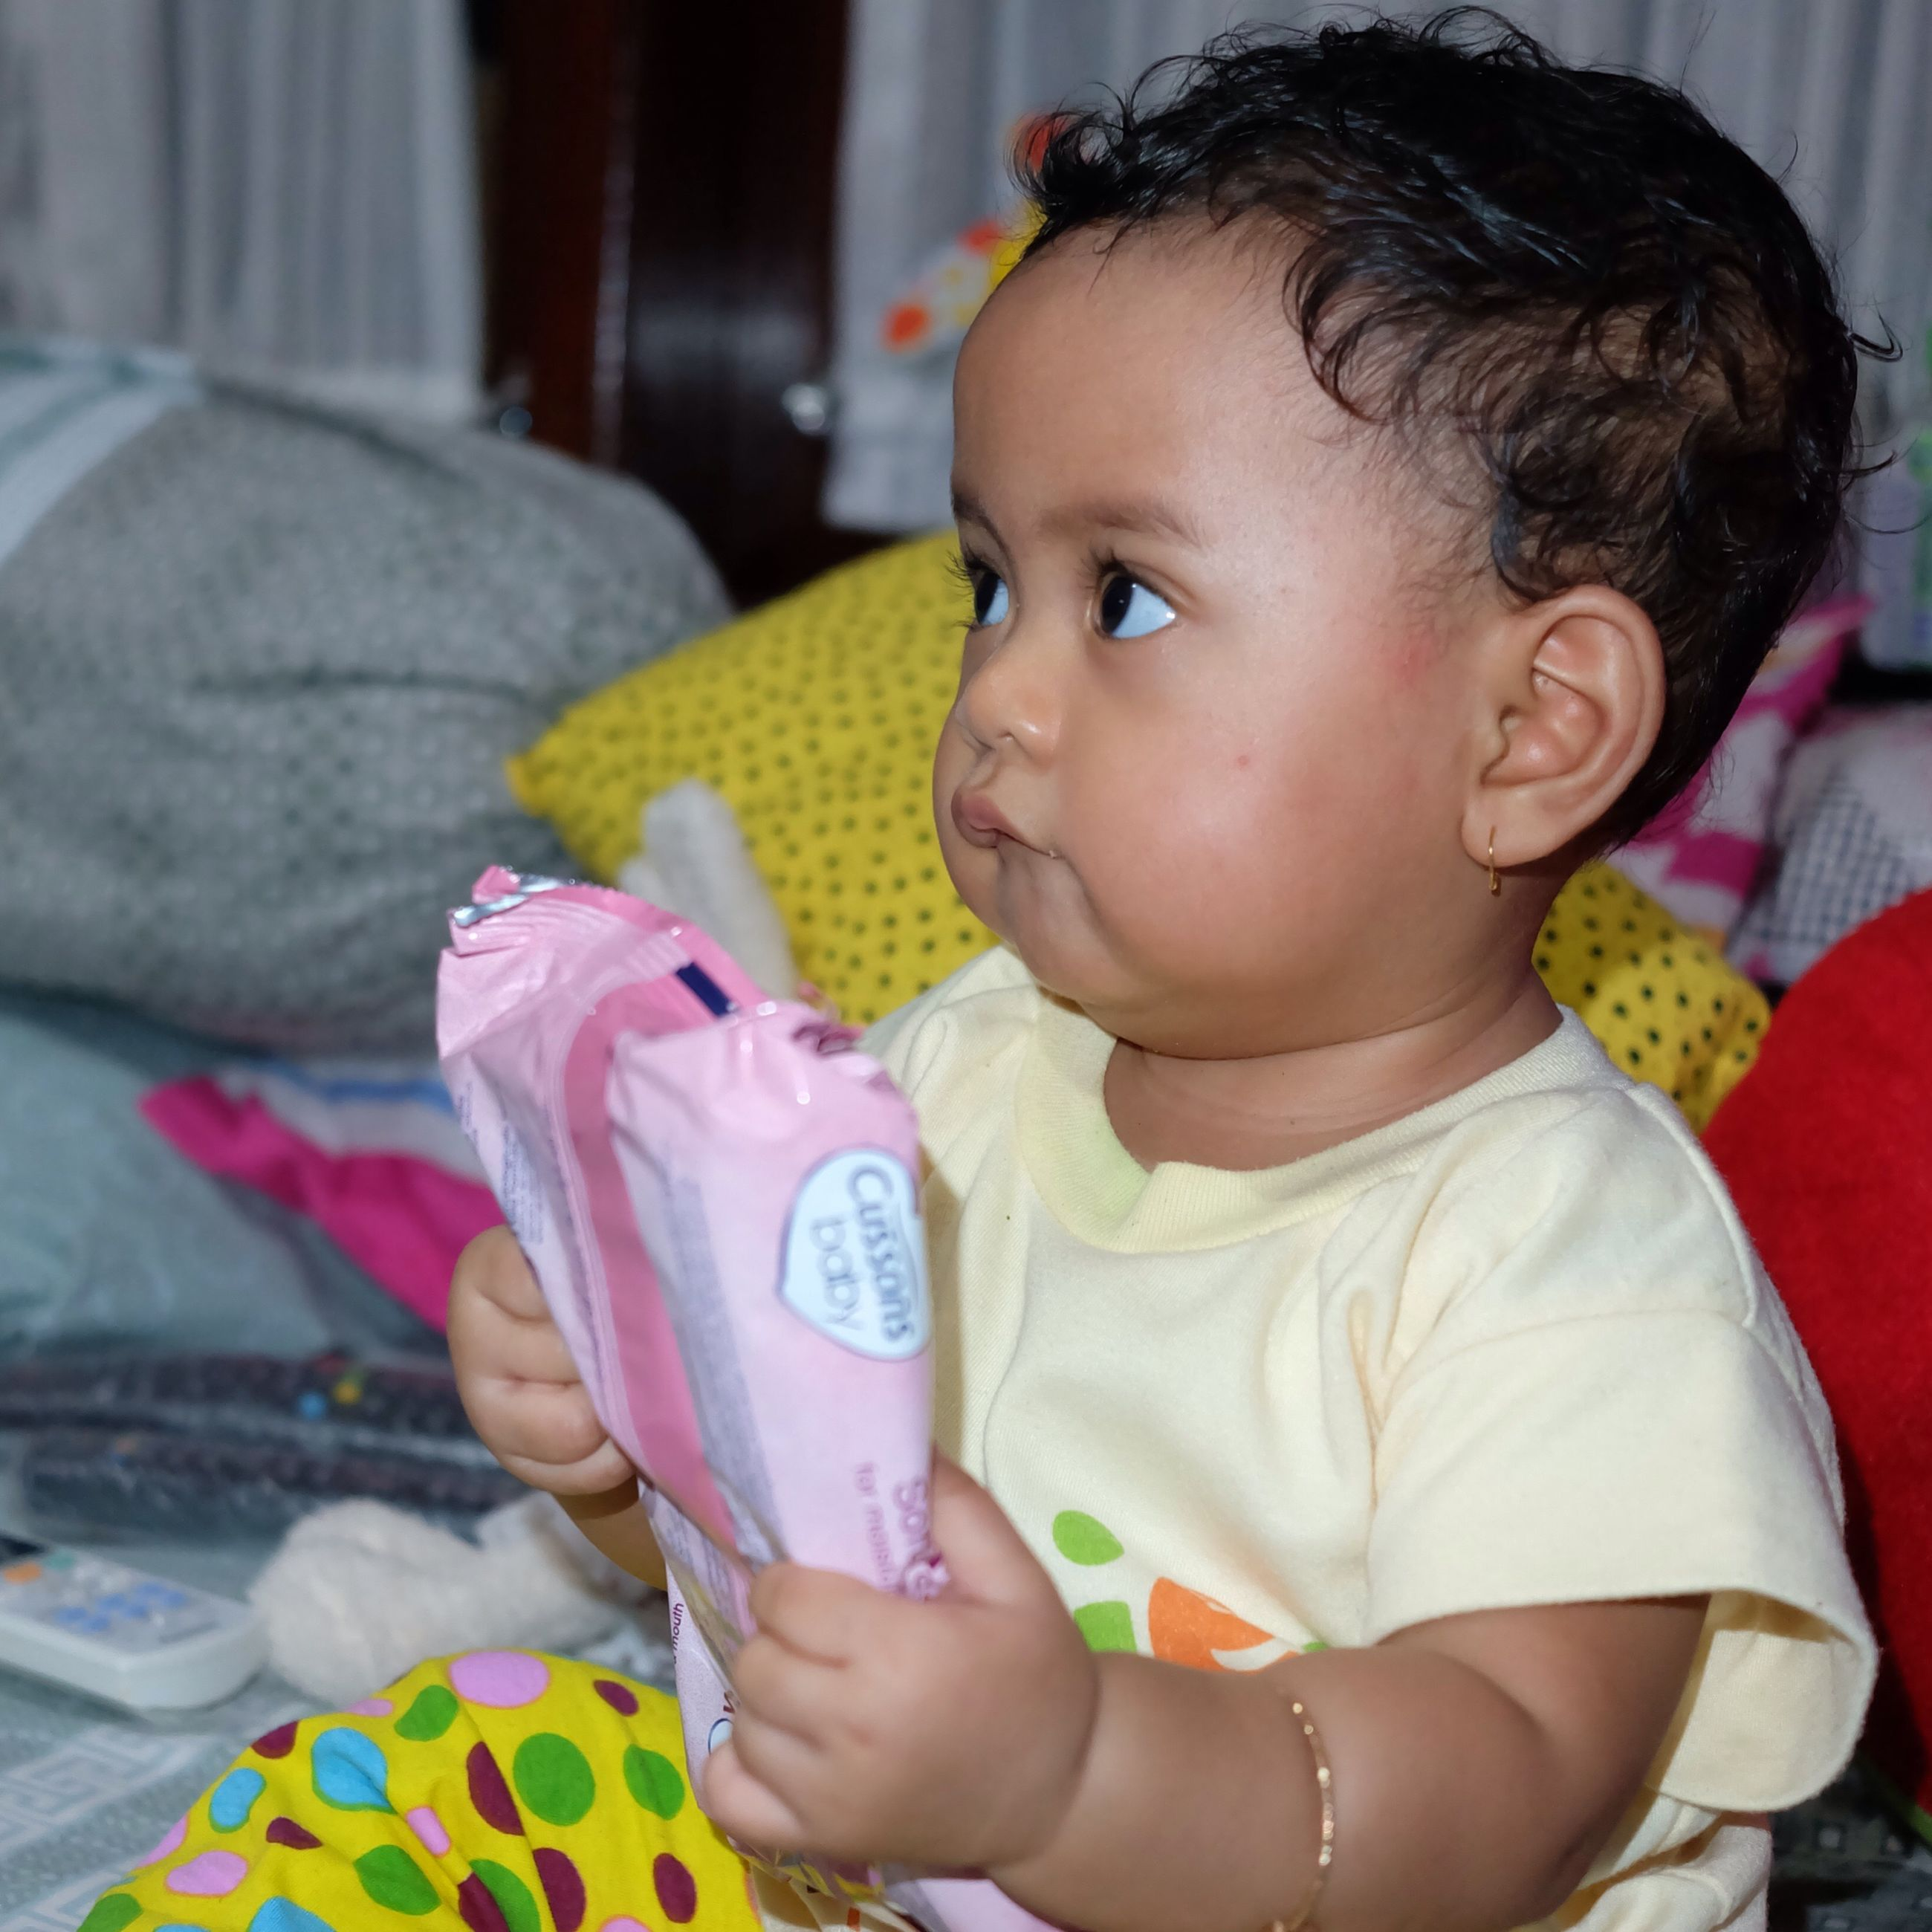 childhood, cute, innocence, elementary age, person, boys, girls, holding, lifestyles, focus on foreground, toddler, leisure activity, baby, babyhood, casual clothing, close-up, indoors, headshot